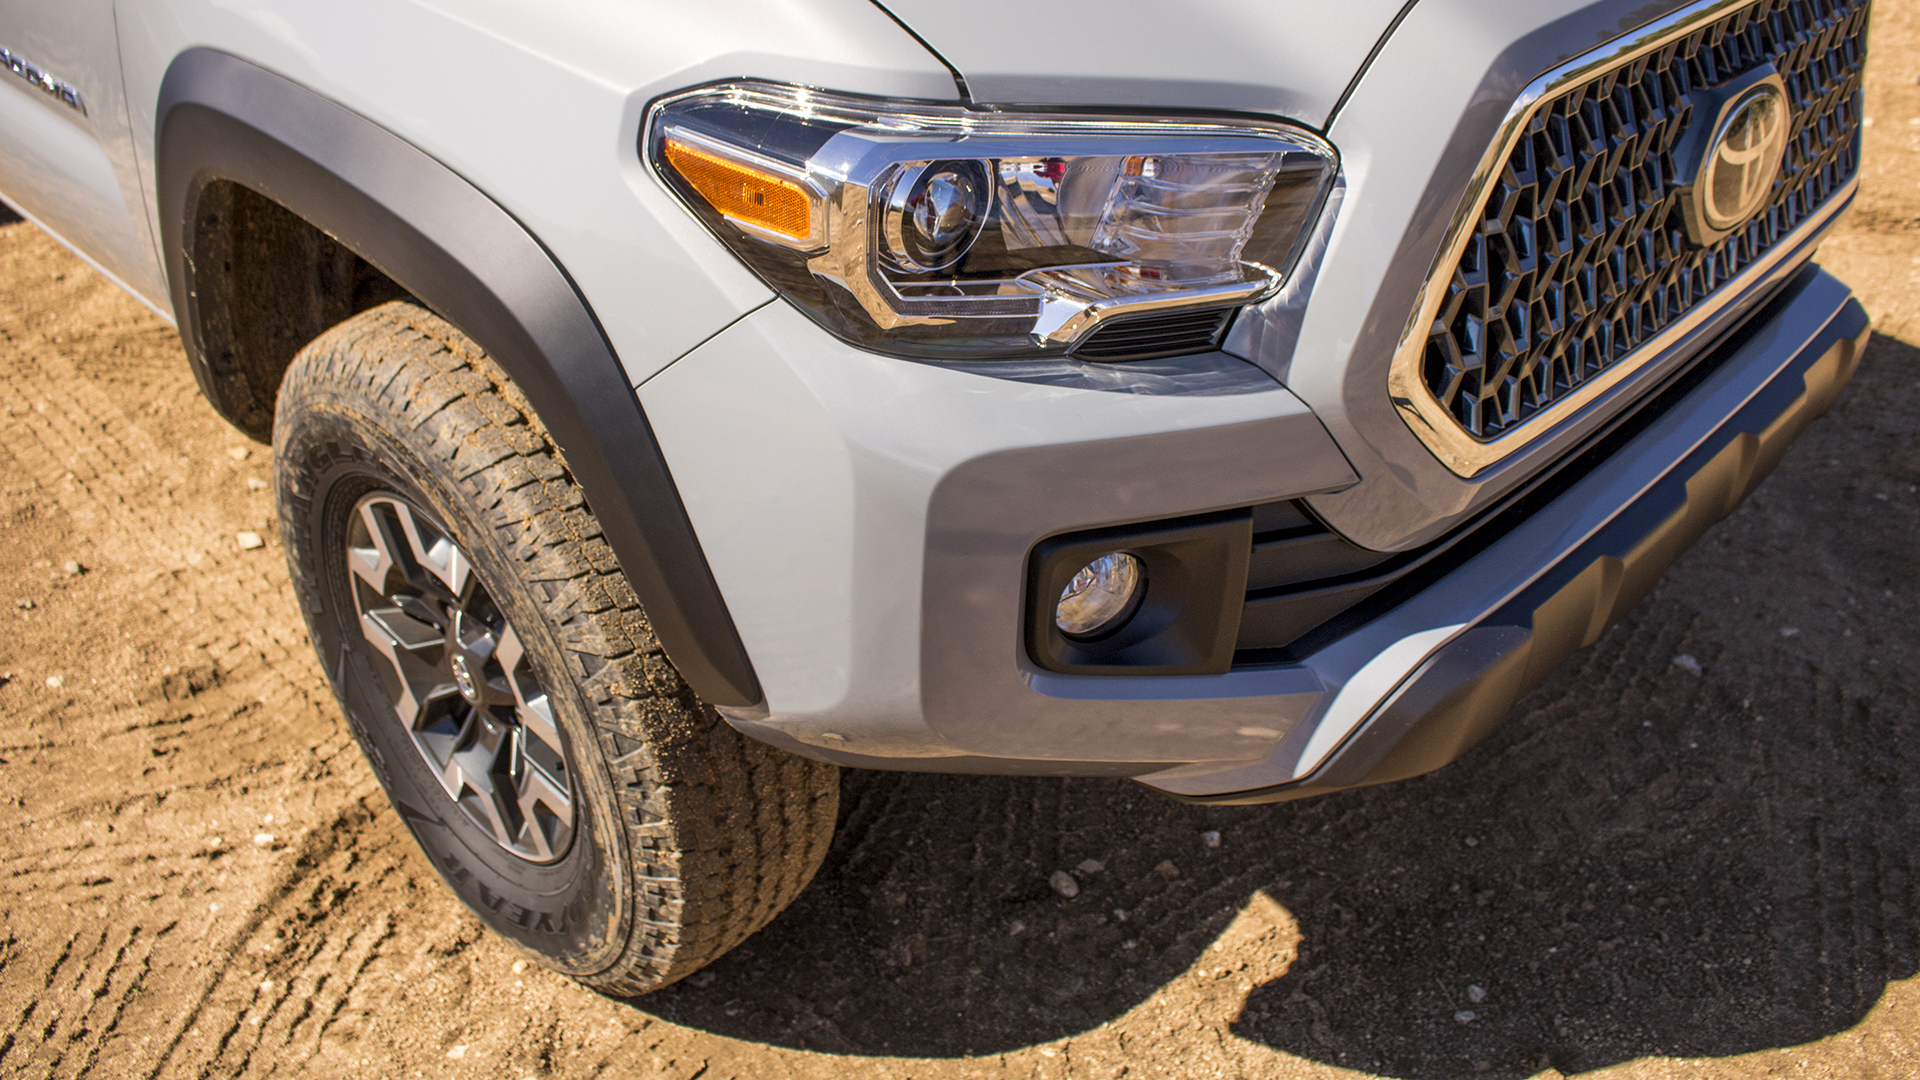 2018 Toyota Tacoma TRD Off-Road Review: An Apocalypse-Proof Pickup